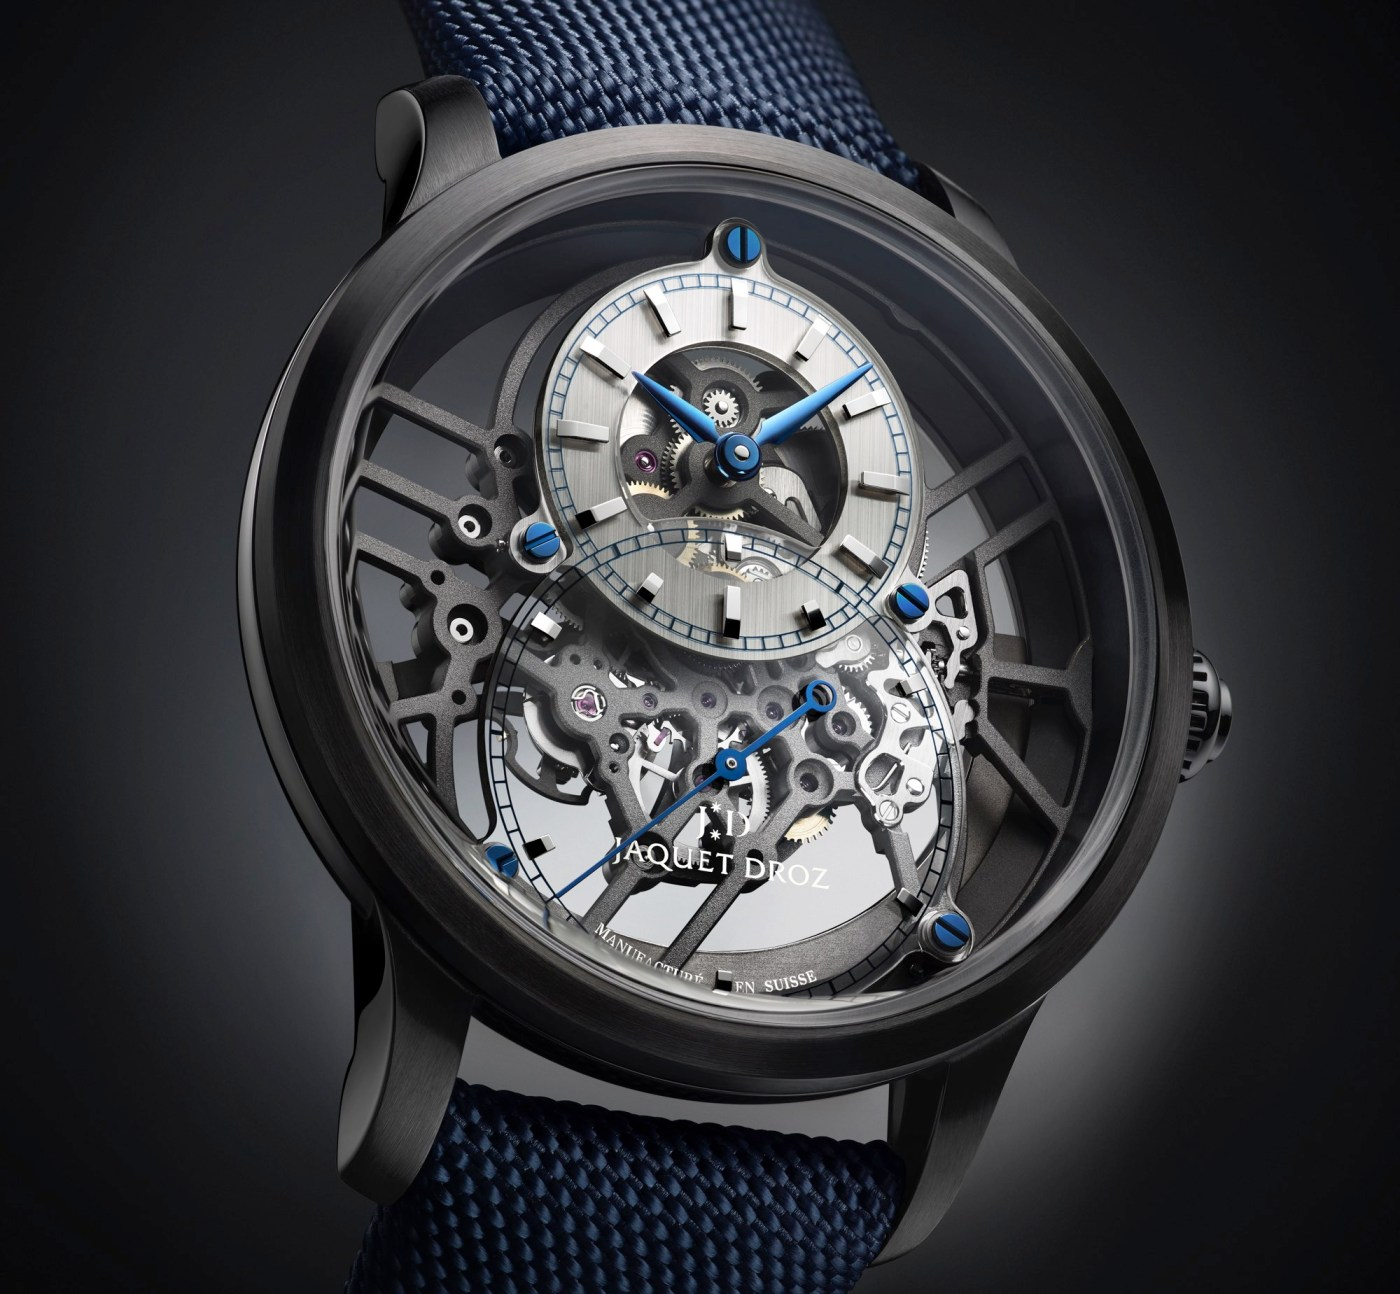 Jaquet Droz Grande Seconde Skelet One Ceramic